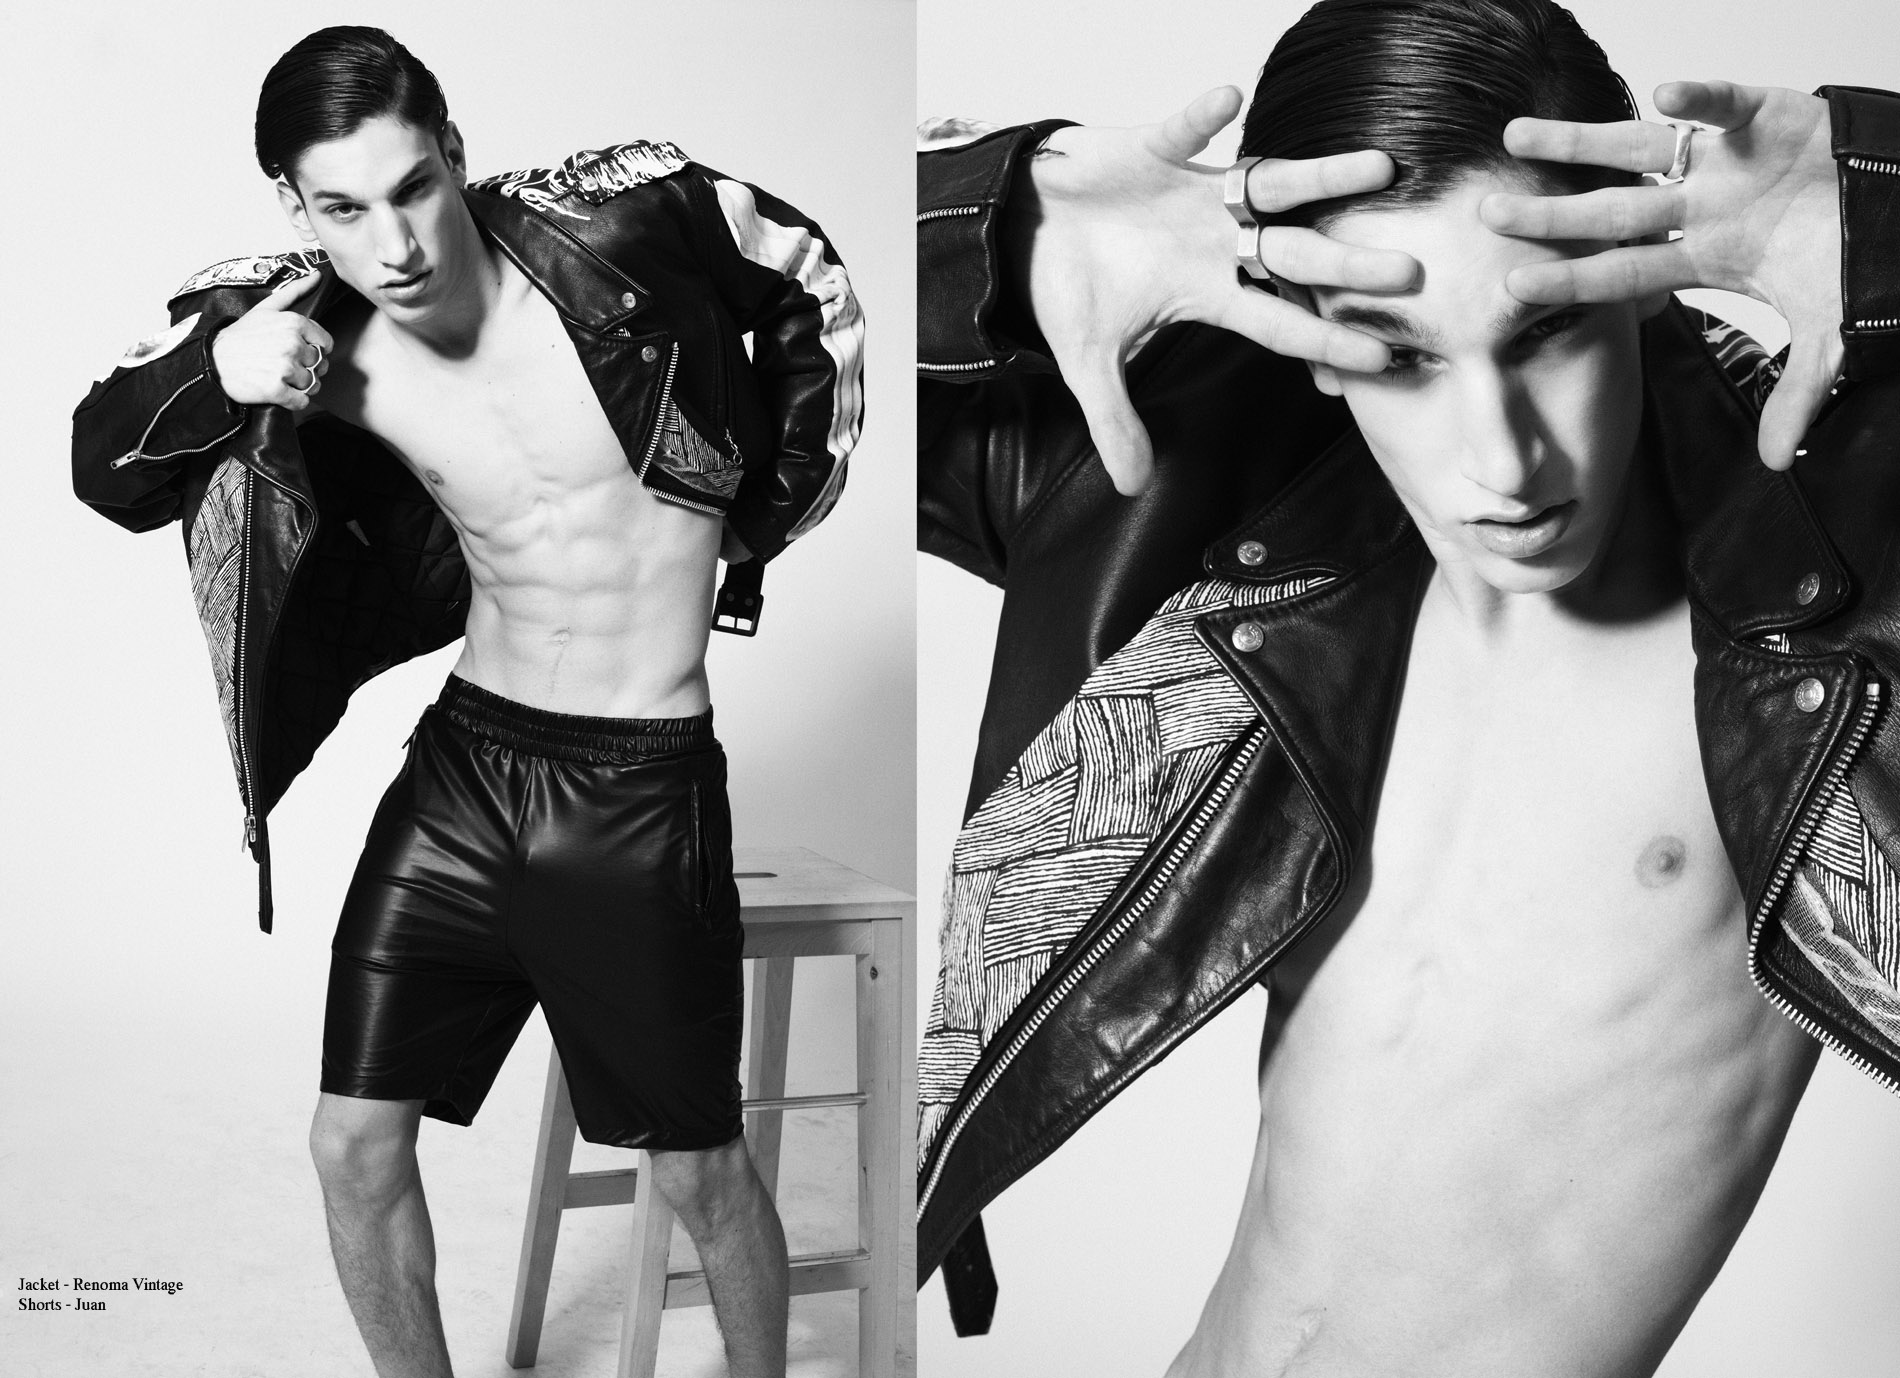 Iasonas Laios by Frederic Monceau for CHASSEUR MAGAZINE